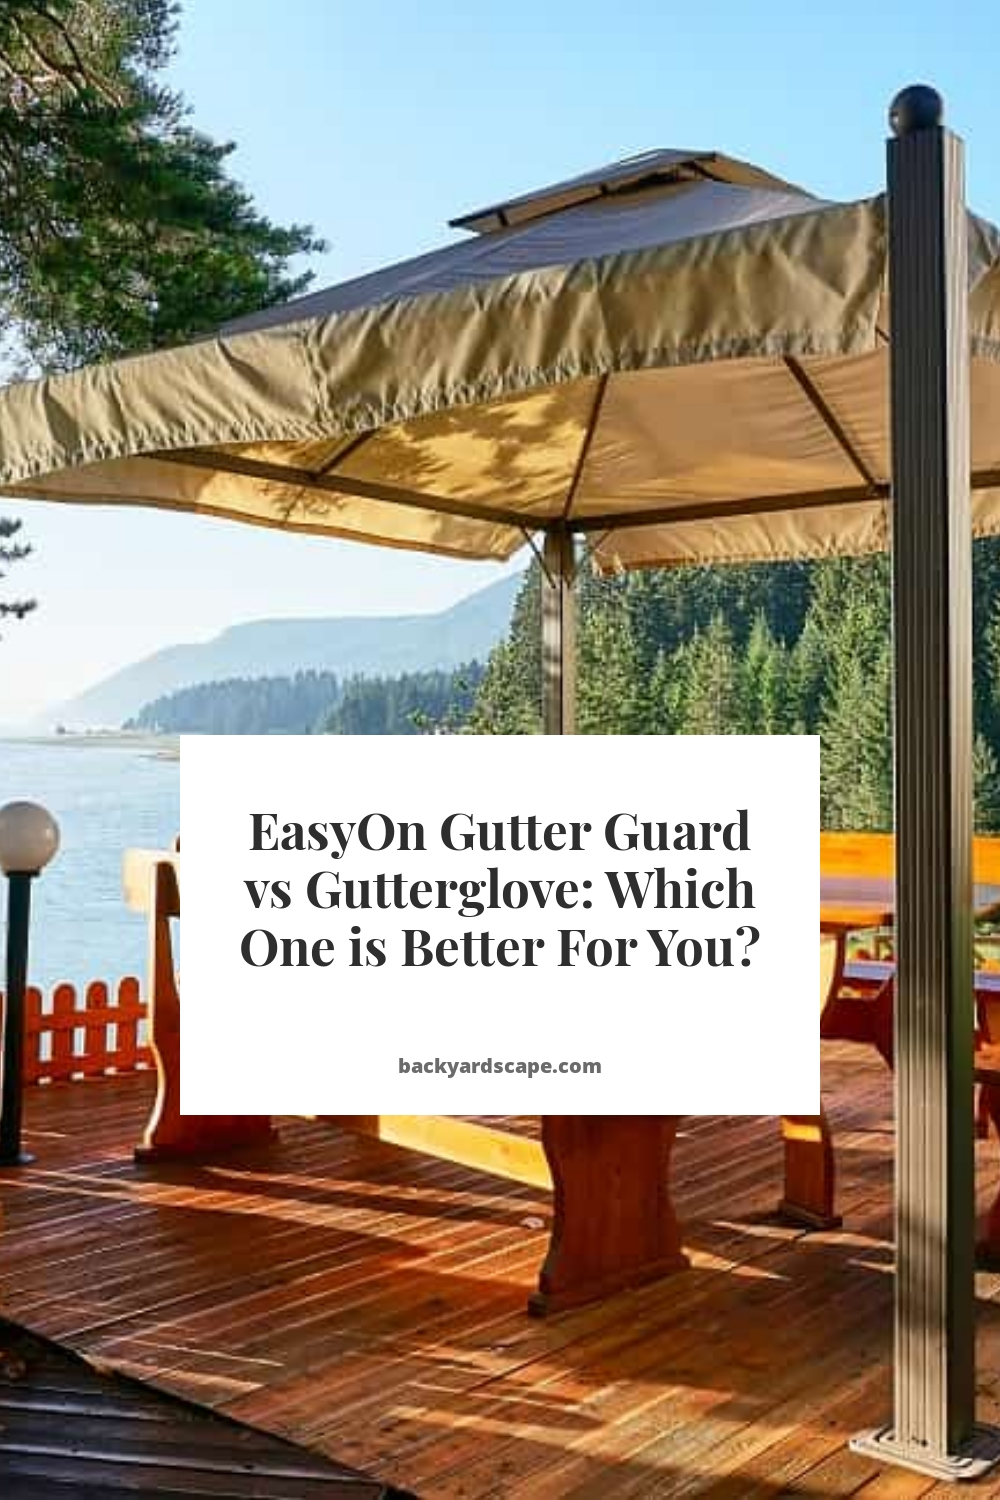 EasyOn Gutter Guard vs Gutterglove: Which One is Better For You?